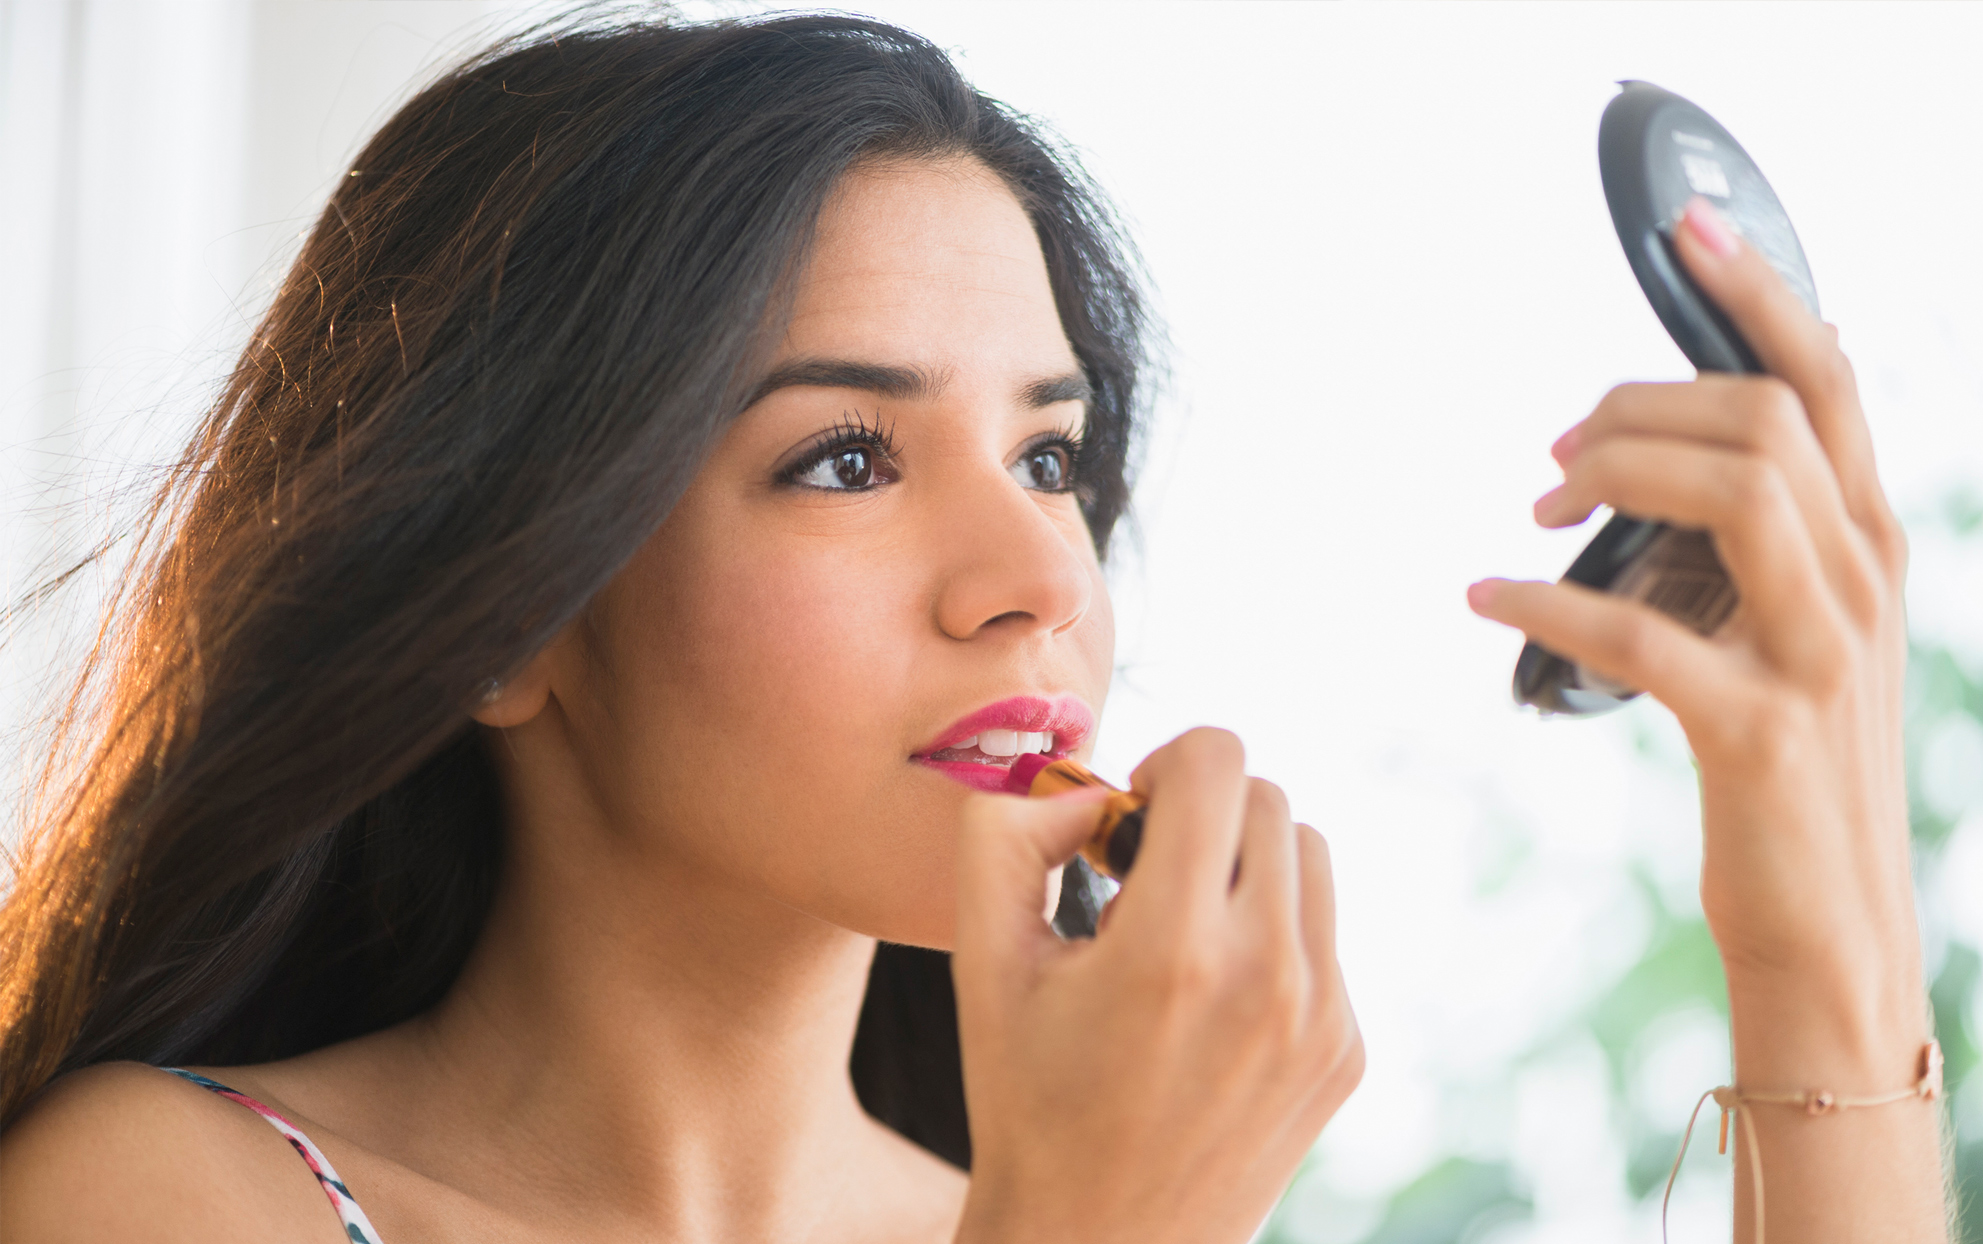 woman applying lipstick while looking at a small mirror